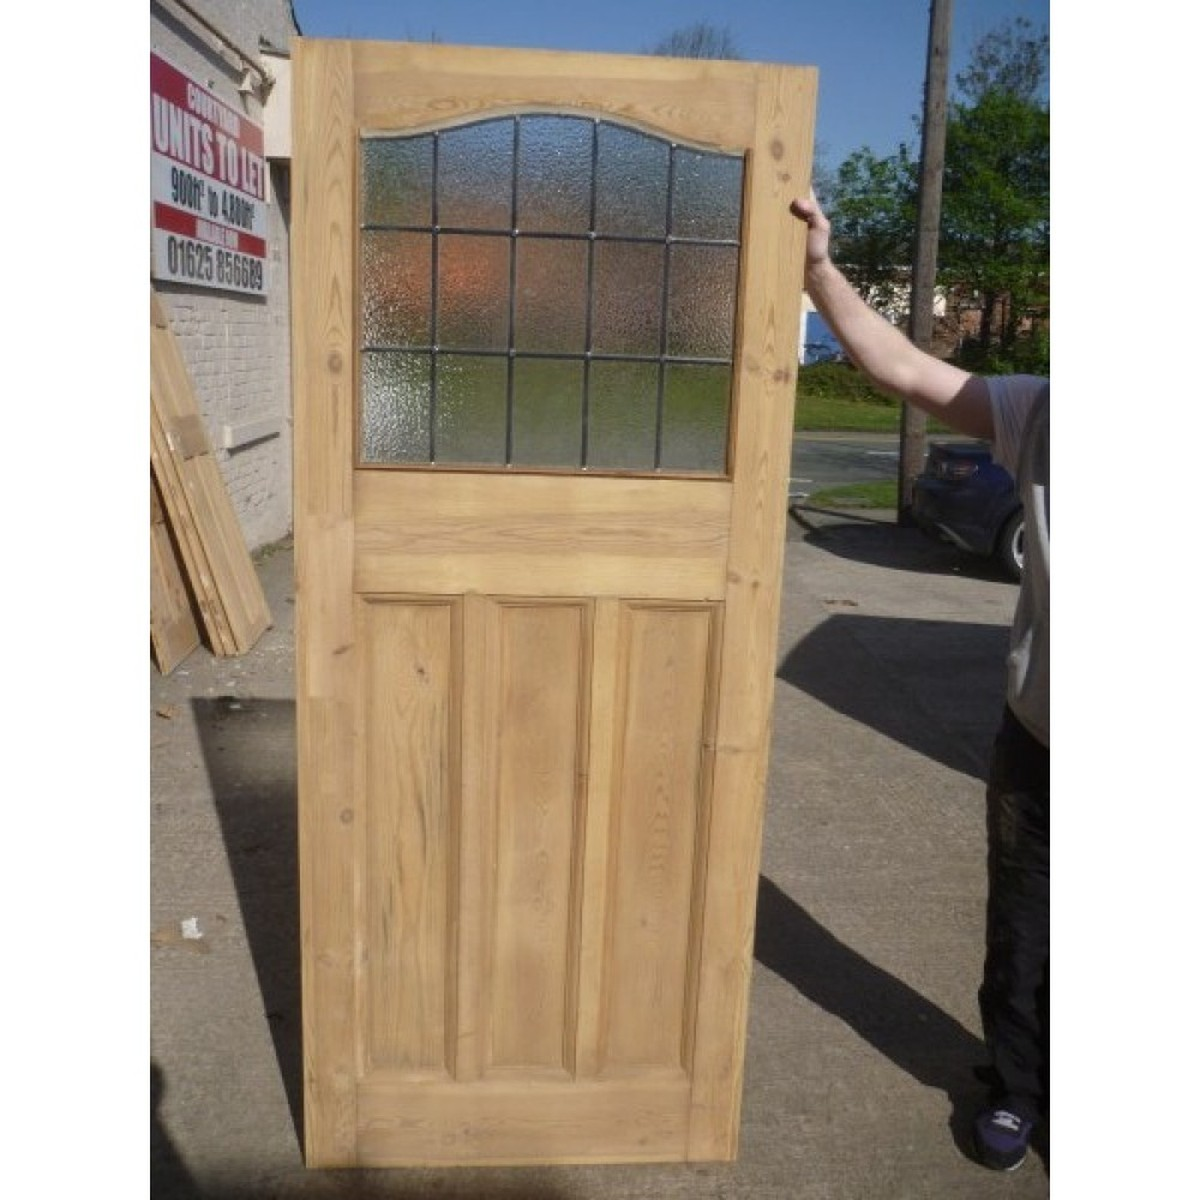 Secondhand Vintage And Reclaimed Doors And Windows 1930